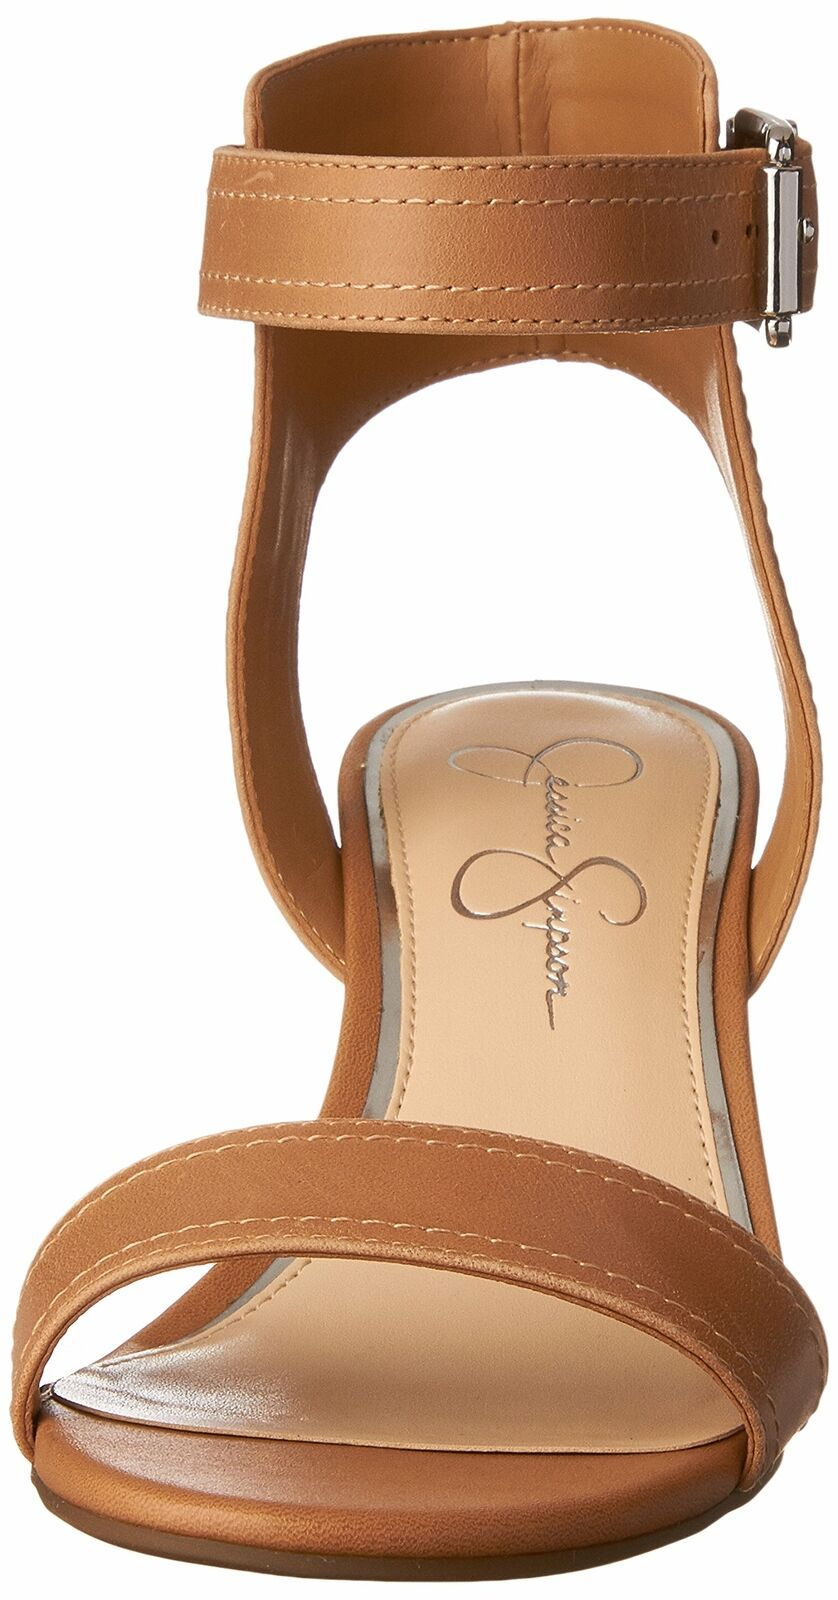 Primary image for Jessica Simpson Women's Cristabel Wedge Sandal 8.5 Buff